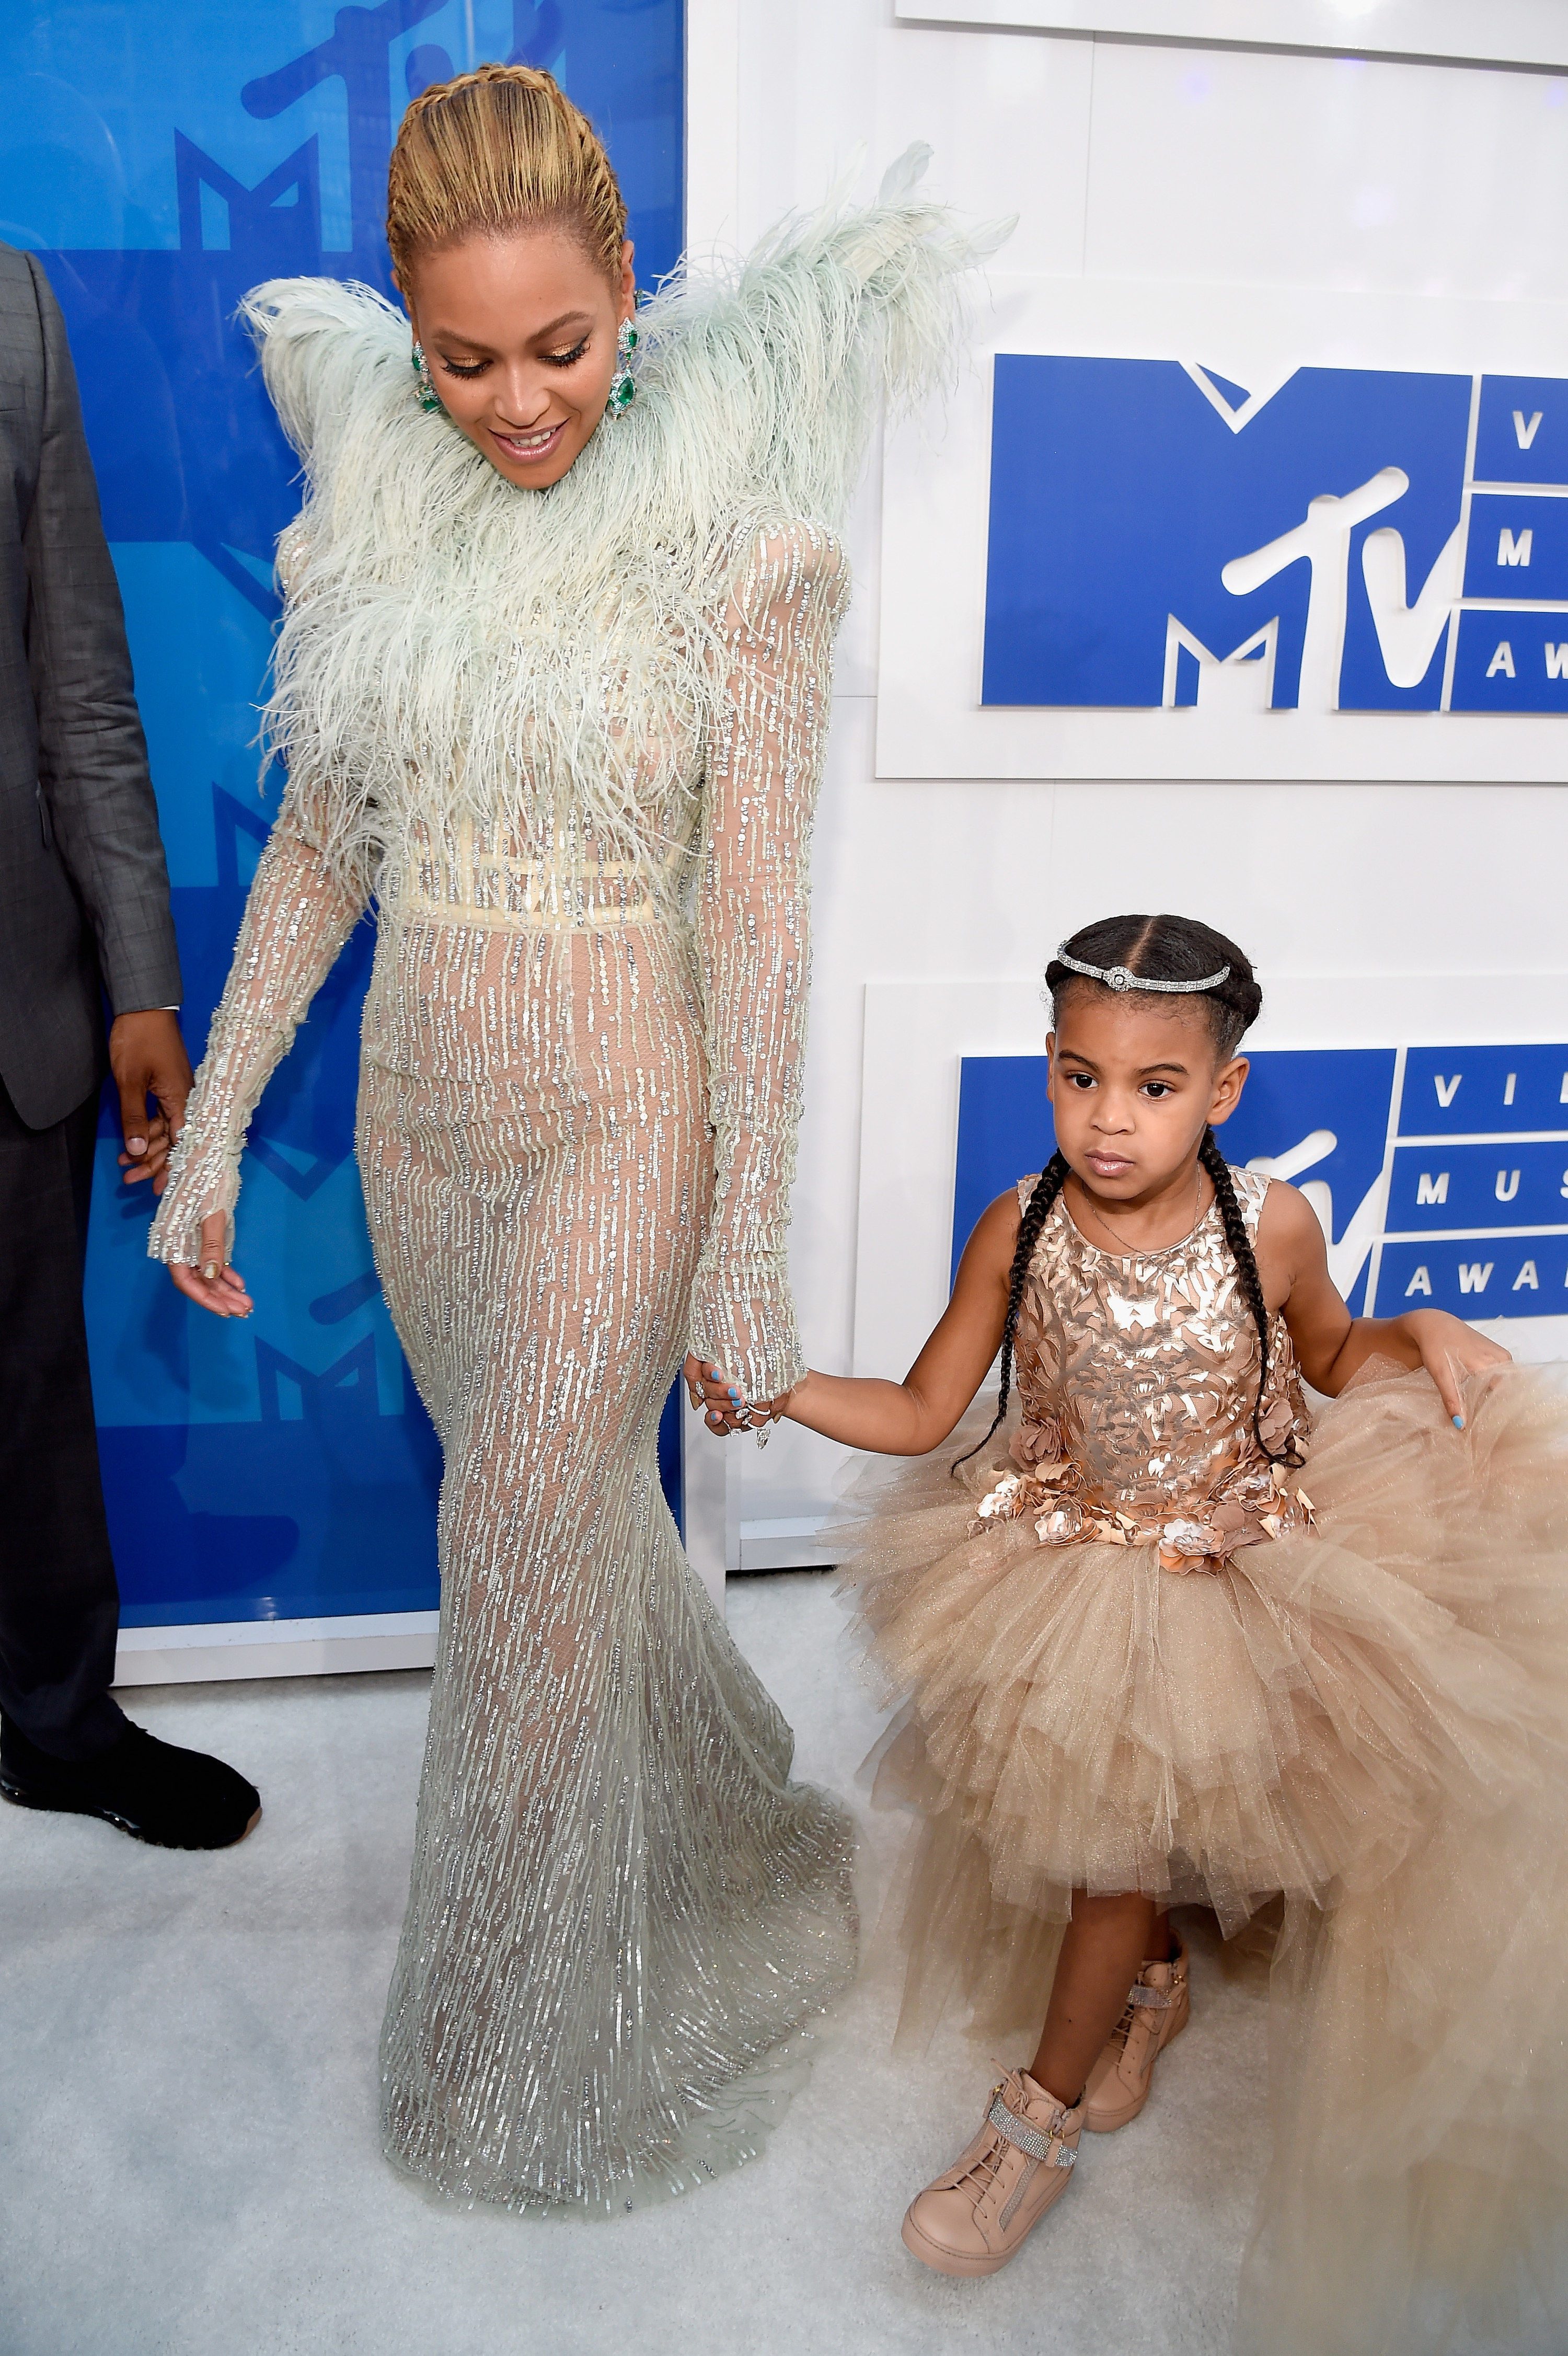 Beyoncé and Blue Ivy at the Video Music Awards in 2016